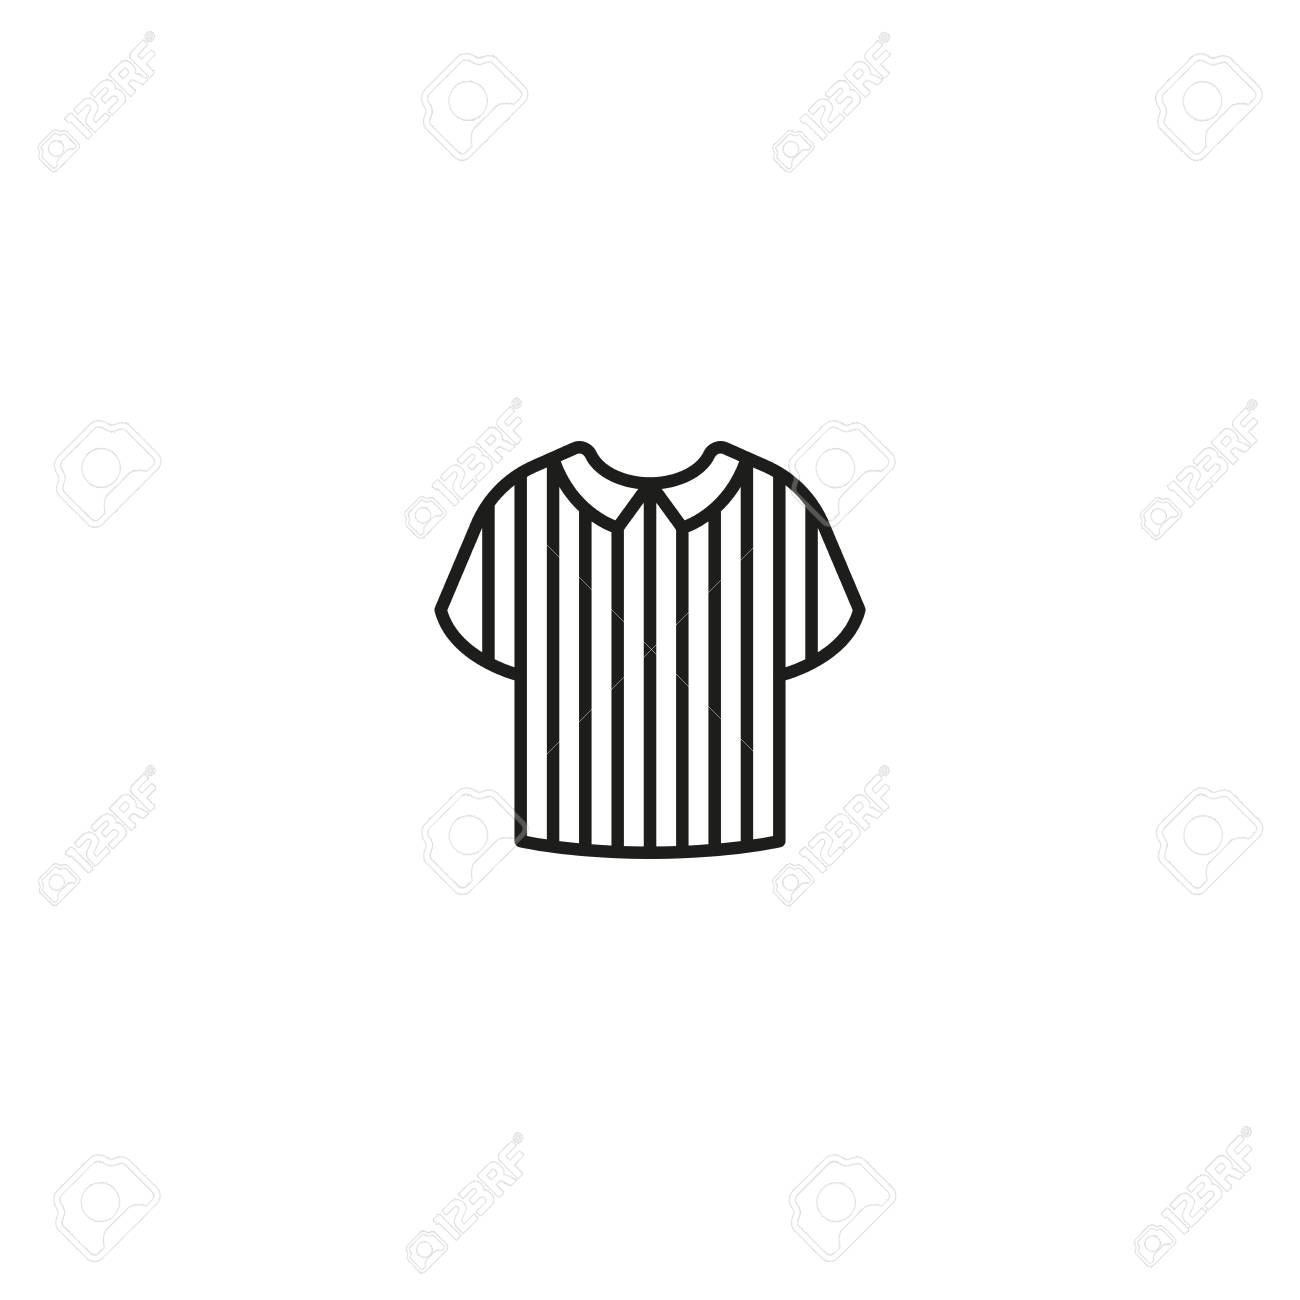 Minimalist Design Of Black Icon With Striped Shirt Of Football Royalty Free Cliparts Vectors And Stock Illustration Image 102568100